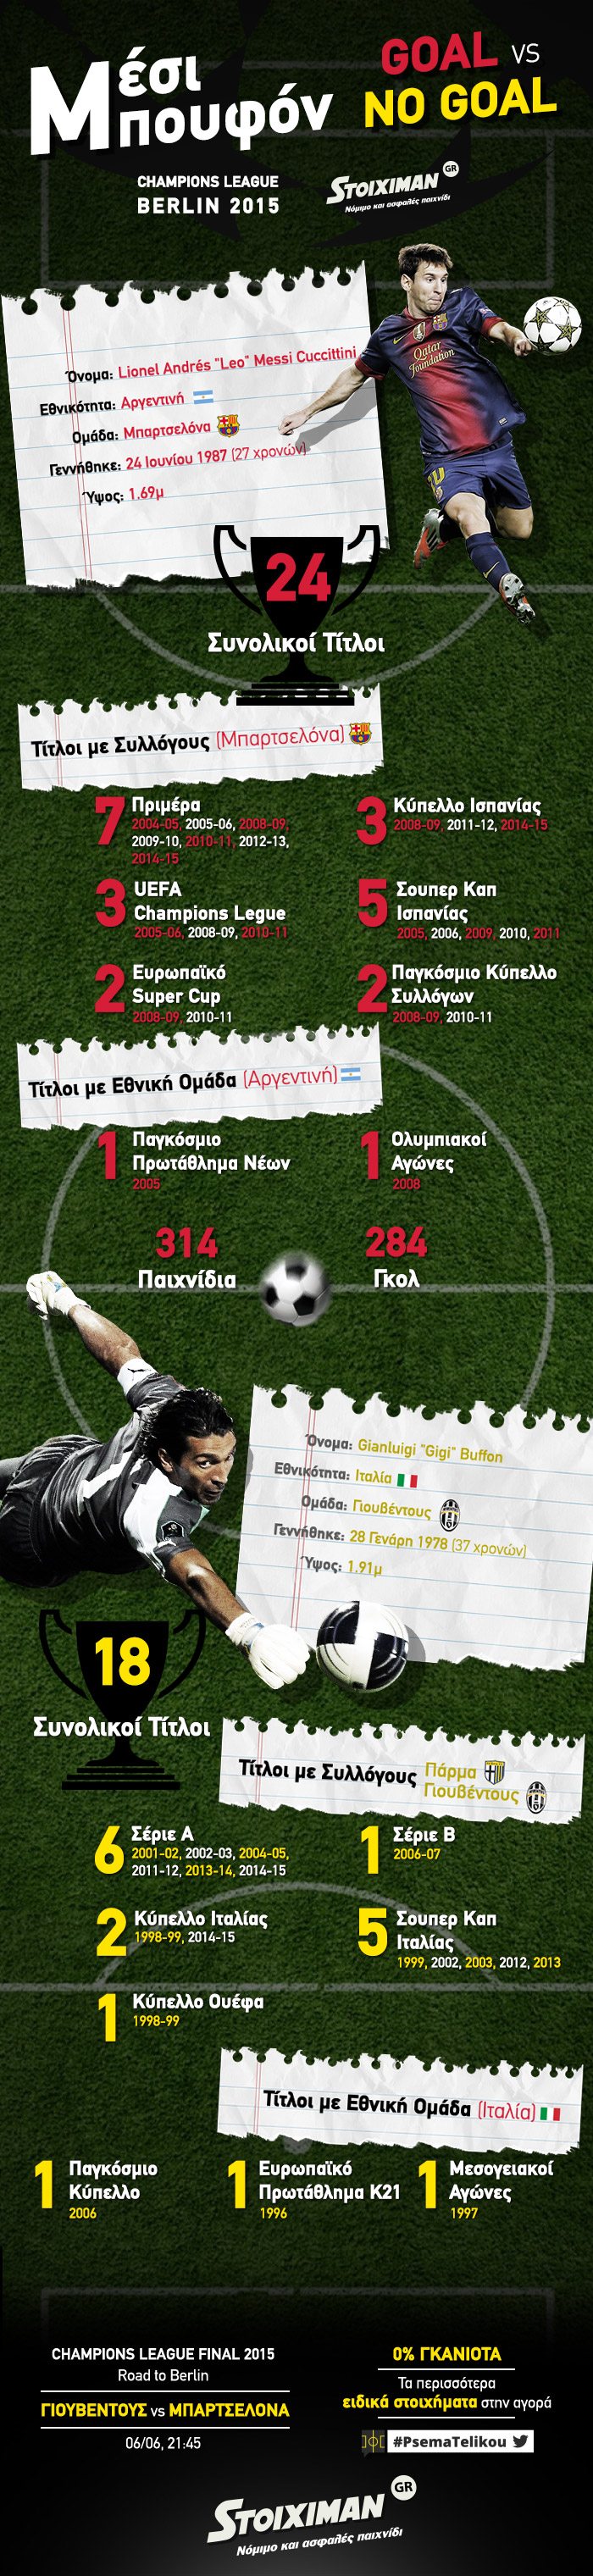 1-PR-Infographic_Stoiximan_Sportsbook_Football_UCL-Final_Infographic